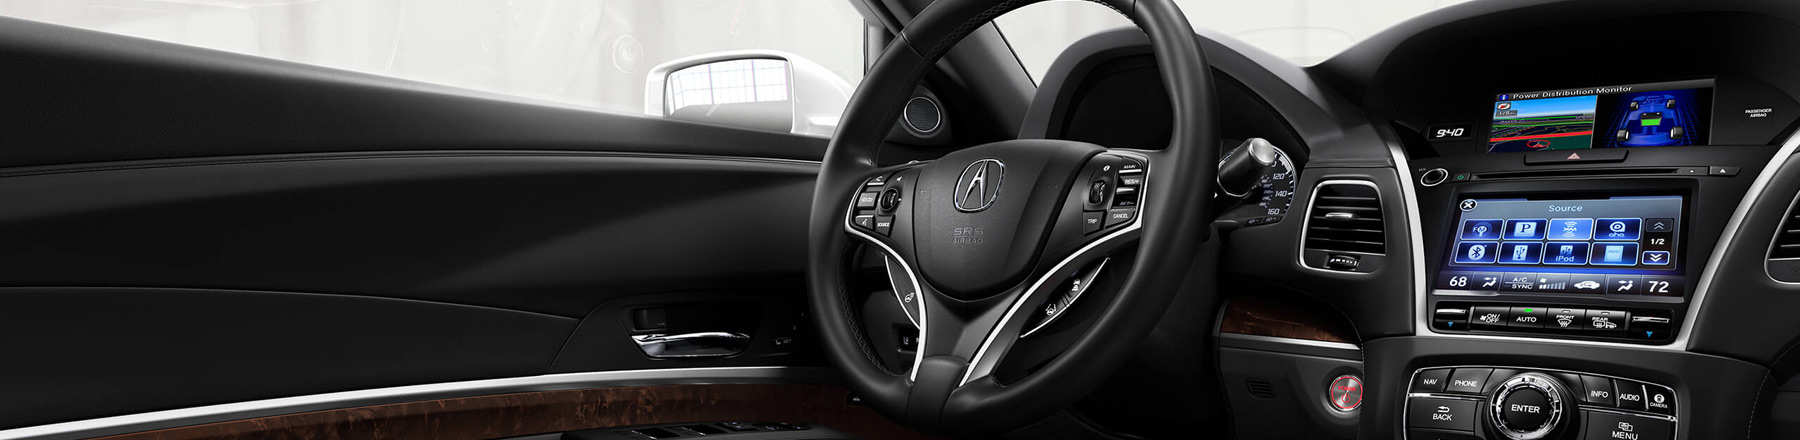 Acura technology